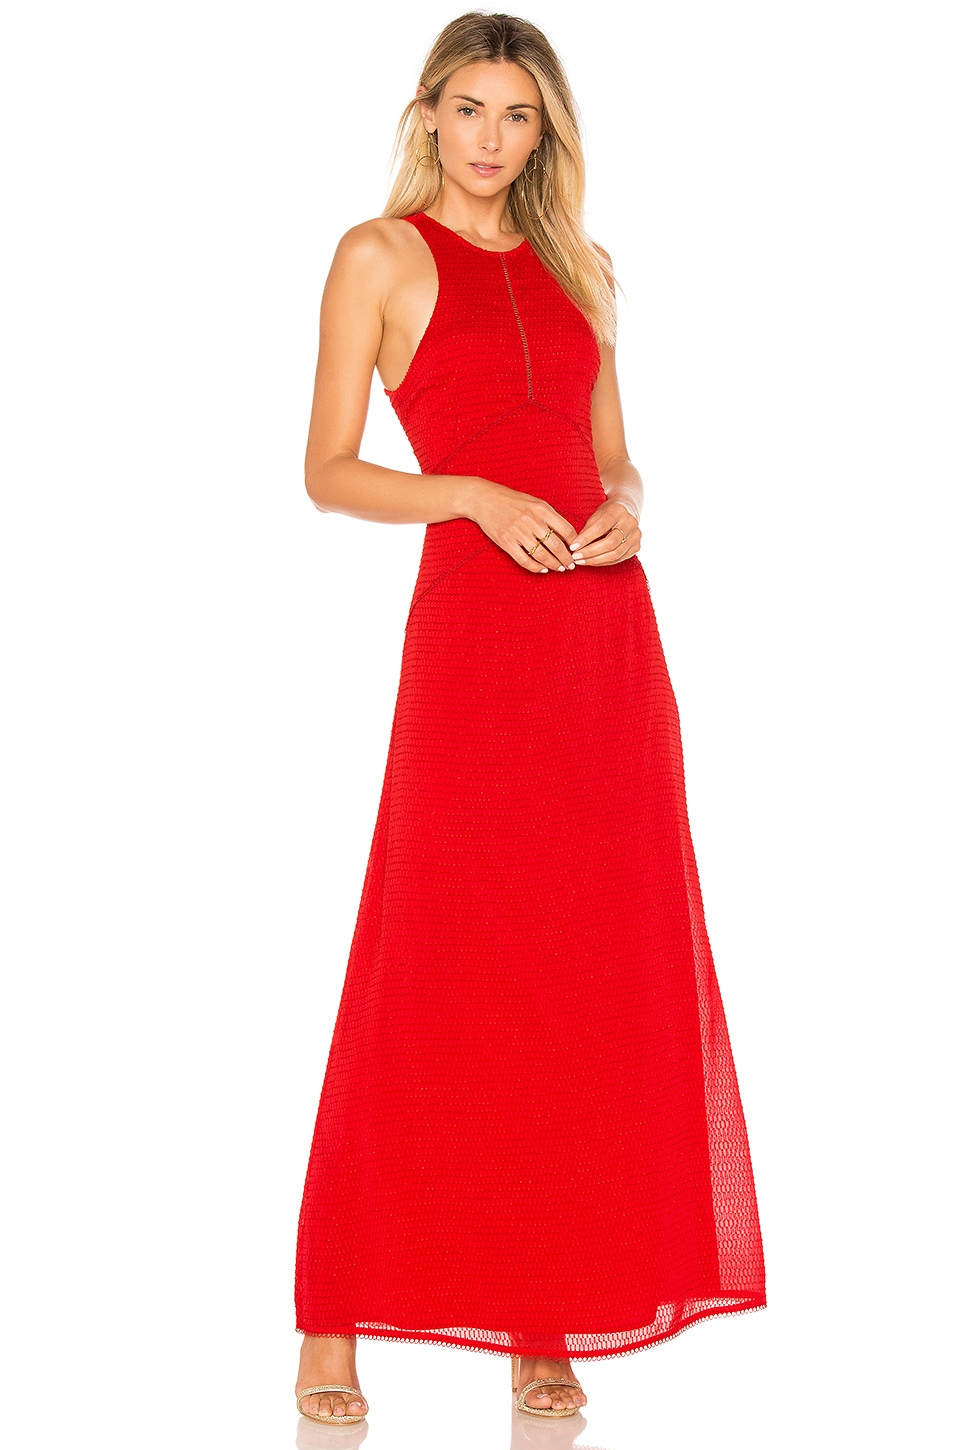 House of Harlow 1960 x REVOLVE Allegra Maxi in Racing Red